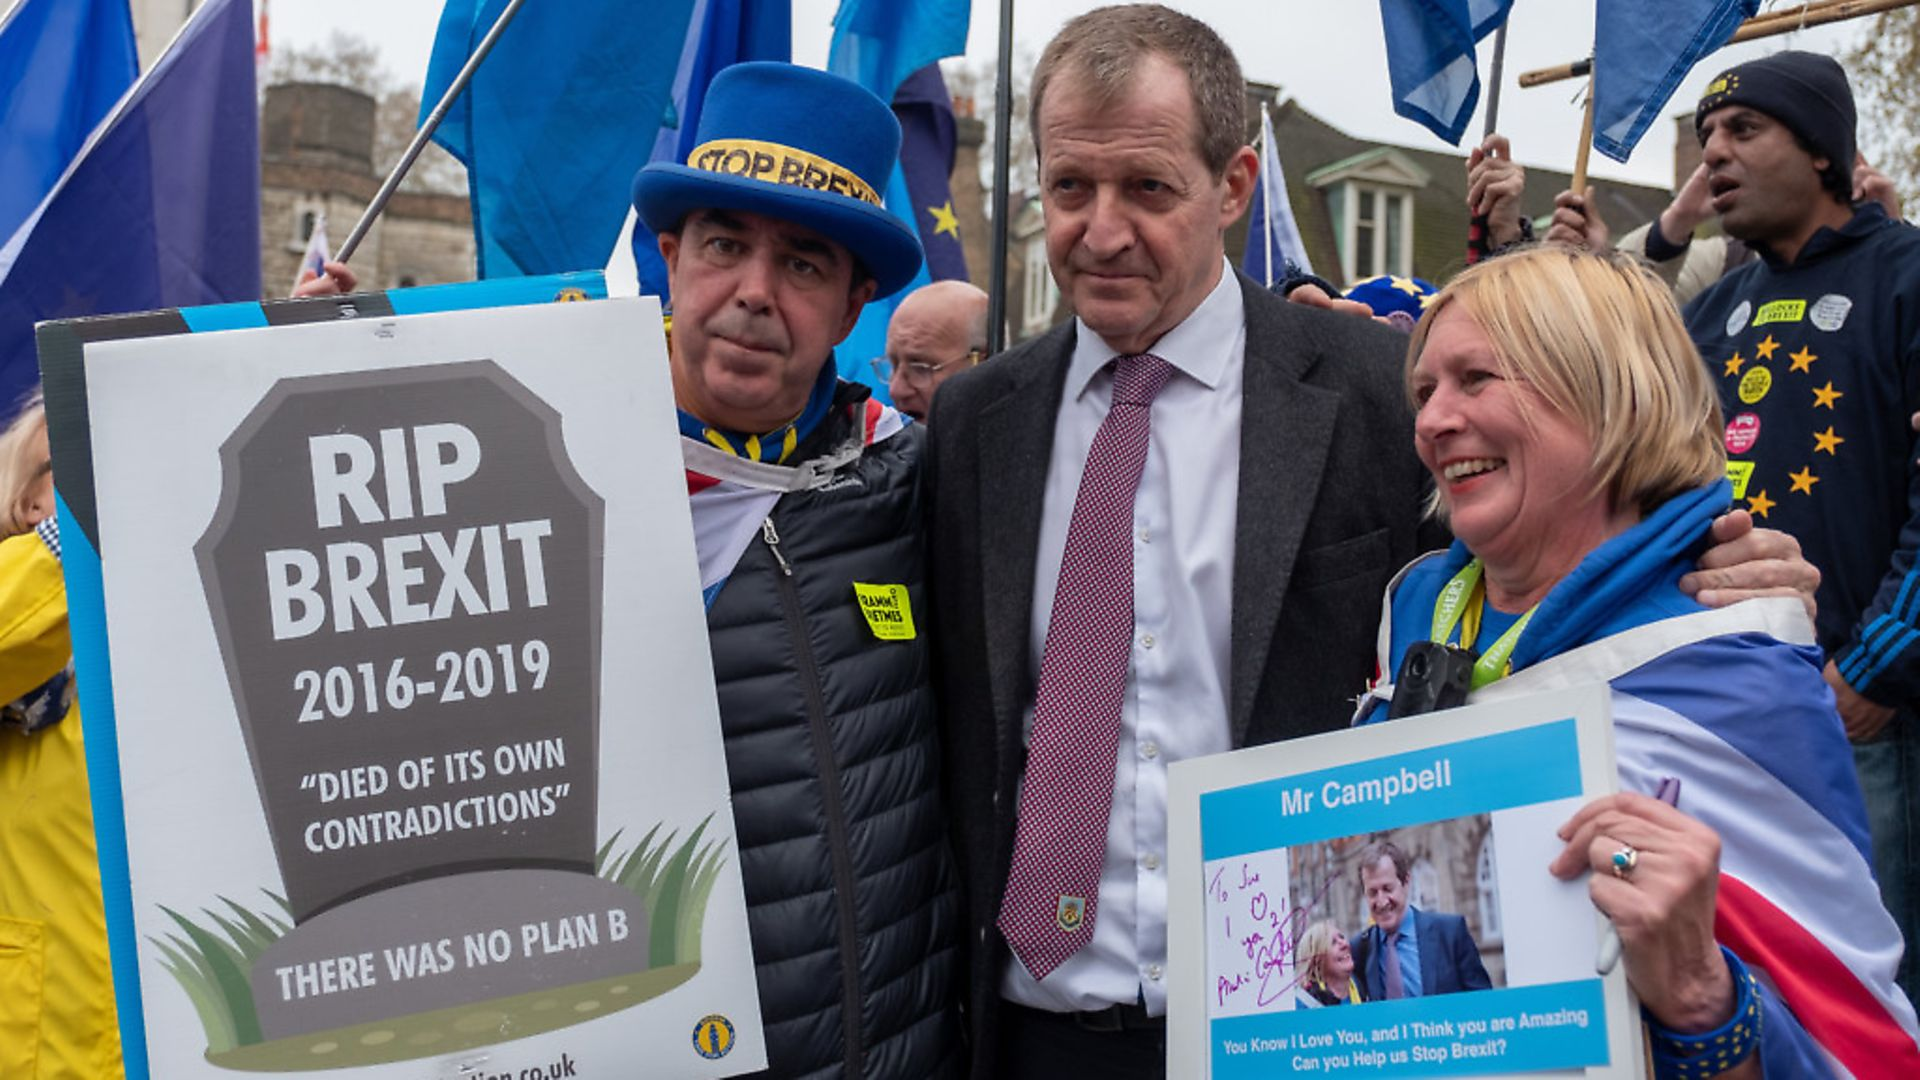 Anti-Brexit campaigners Steve Bray (L) and Alastair Campbell (C) pose outside the Houses of Parliament in London, England, on April 8, 2019.  (Photo by Robin Pope/NurPhoto via Getty Images) - Credit: NurPhoto via Getty Images